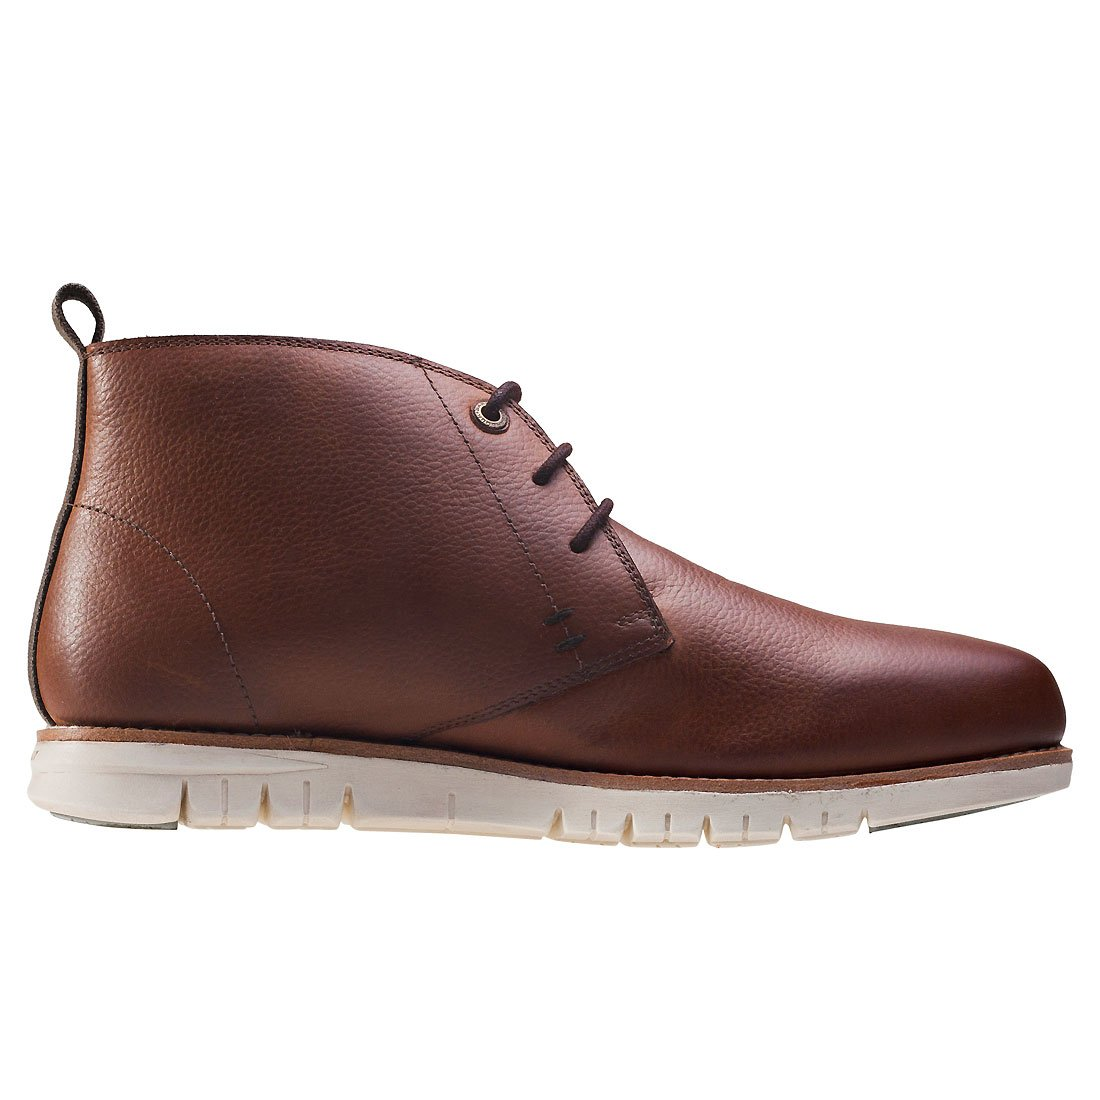 d7a35f7d450 Barbour Mens Burghley Nubuck Smart Casual Winter Work Ankle Chukka ...